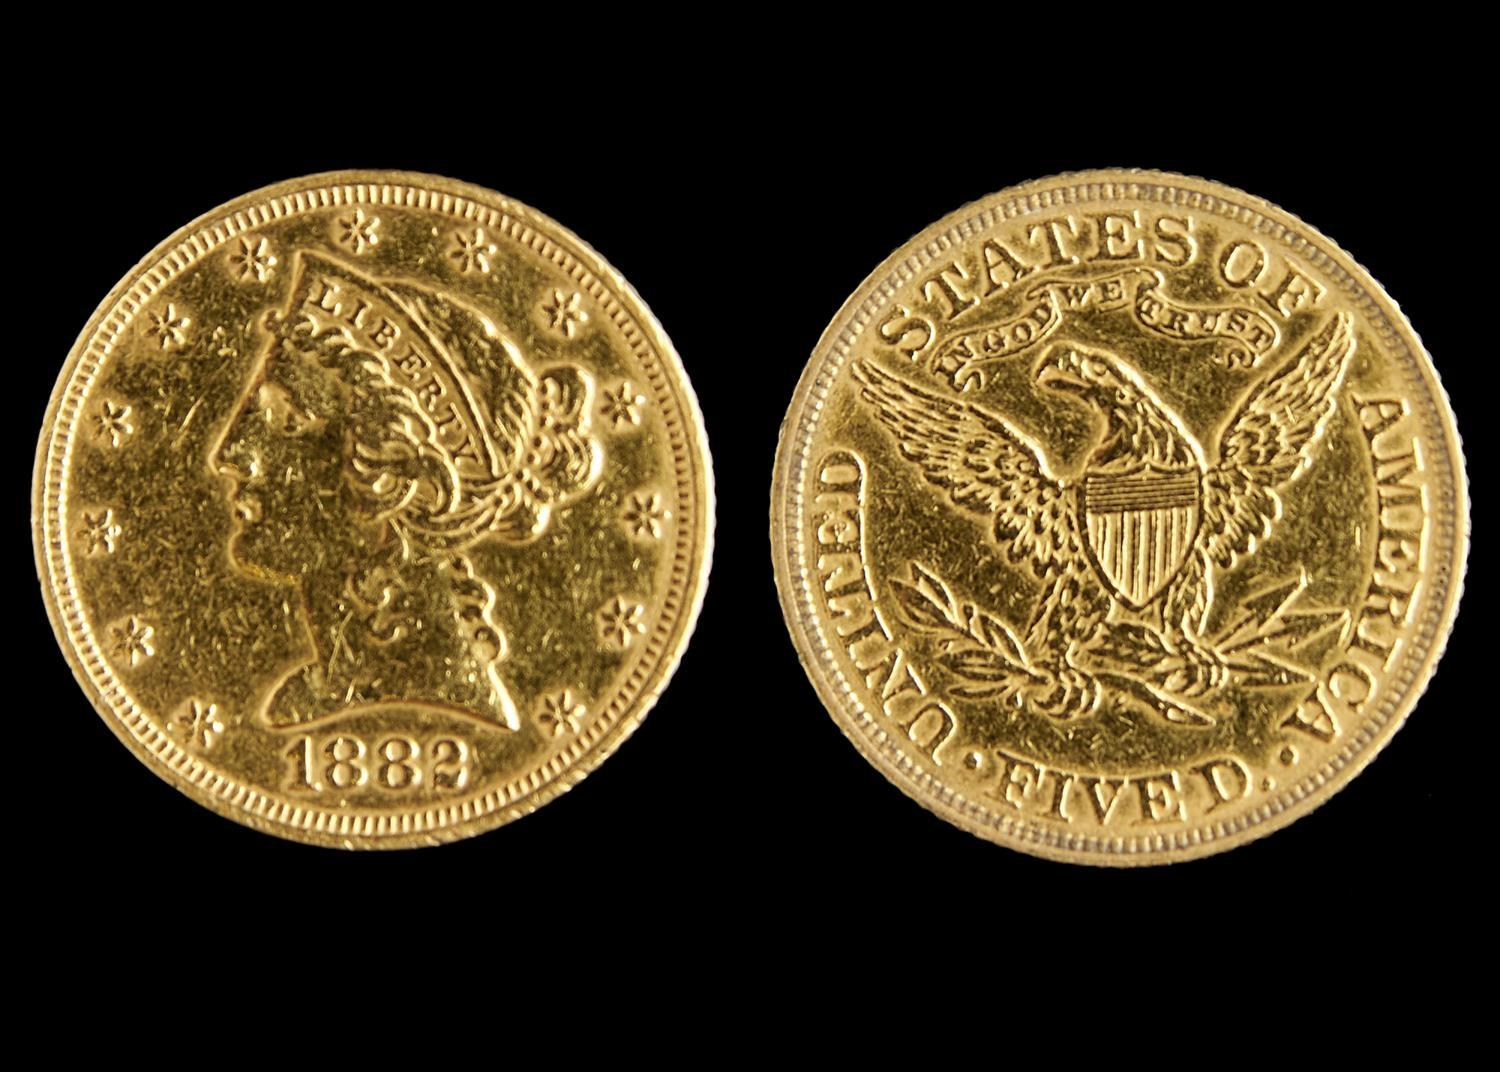 GOLD COIN. UNITED STATES OF AMERICA, 5 DOLLARS 1882, POLISHED, FINE